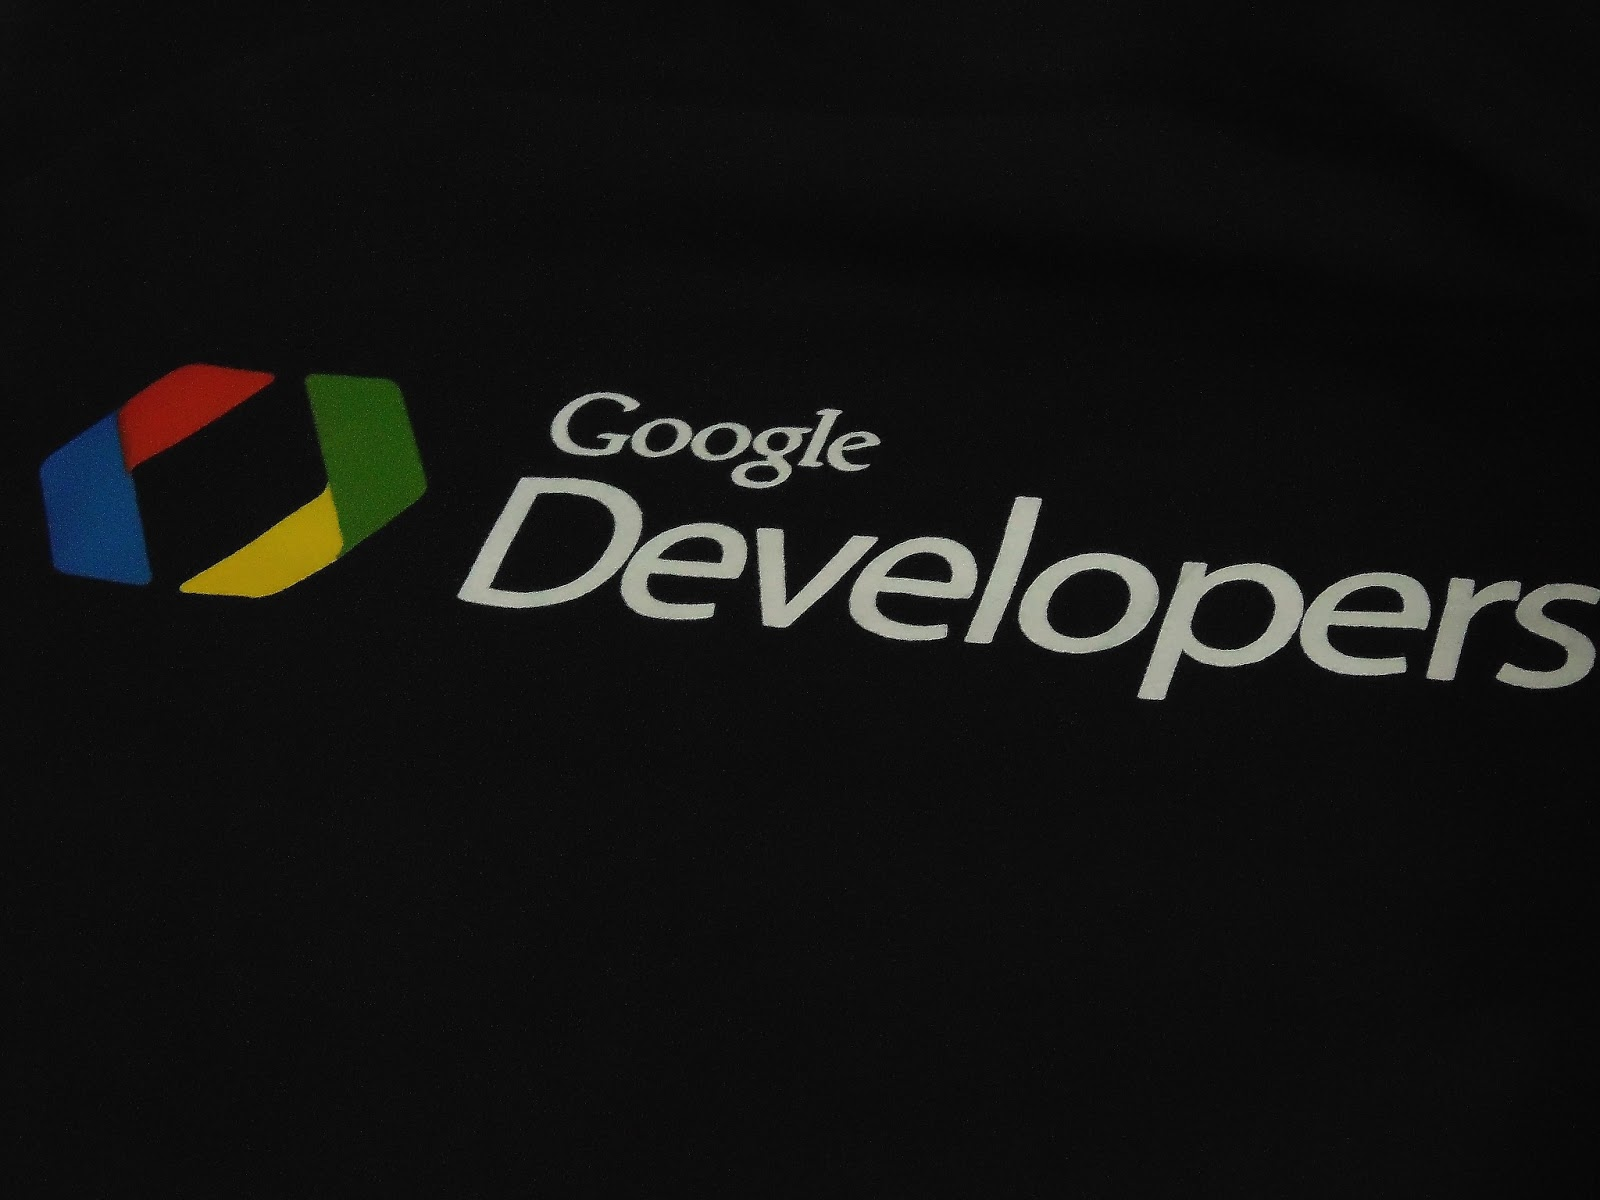 Cryptocurrency Wallpaper Hd The Google Developers Group Devfest 2016 Is Happening In